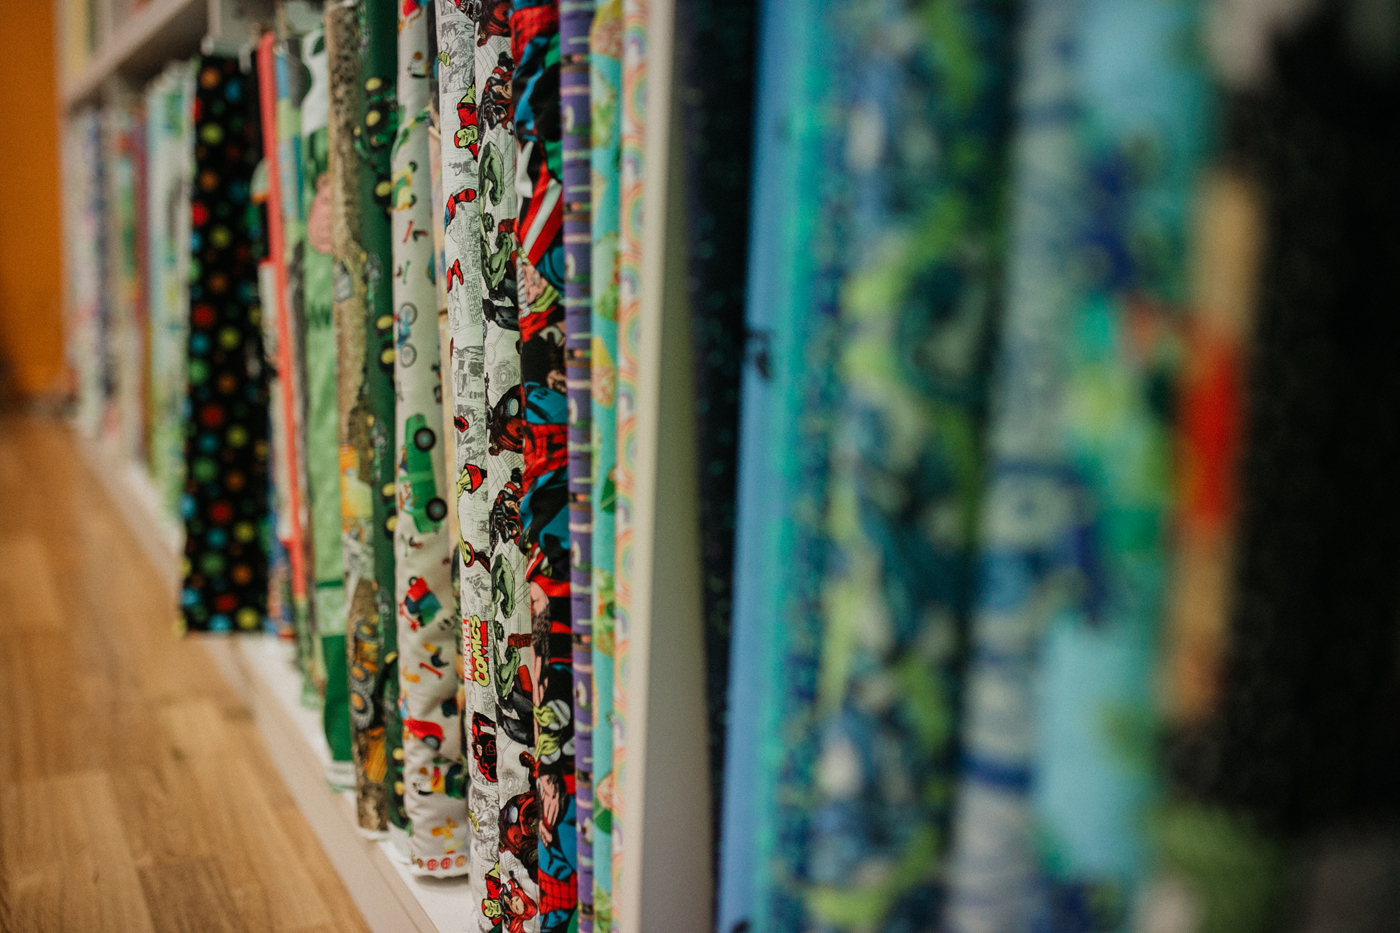 Needleworx store with rows pattern sewing material